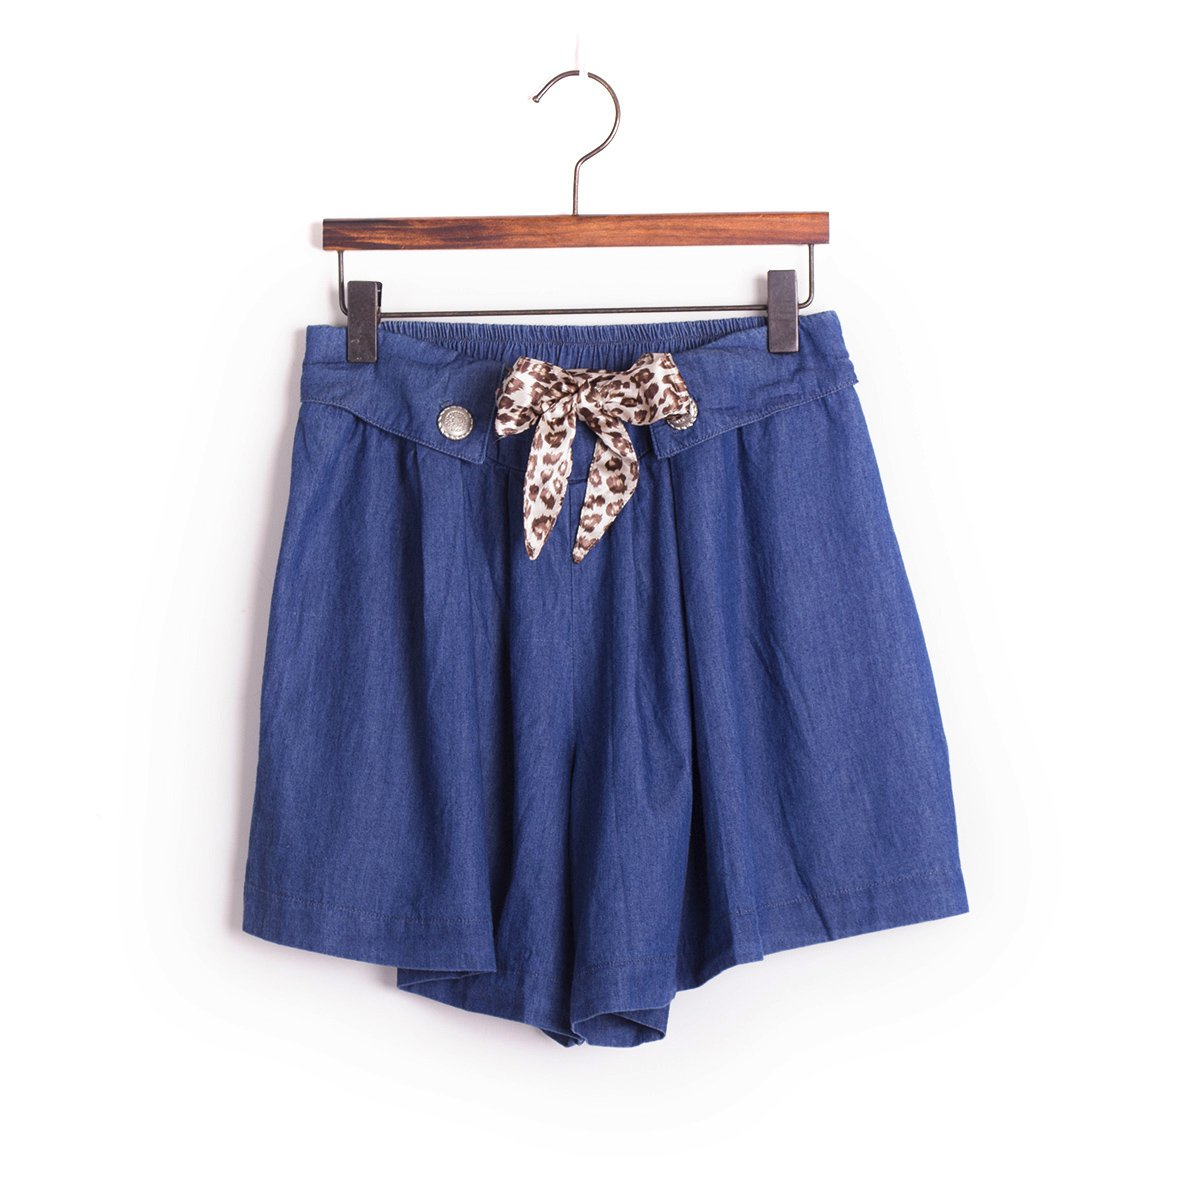 Cotton culotte shorts blue removable leopard belt S